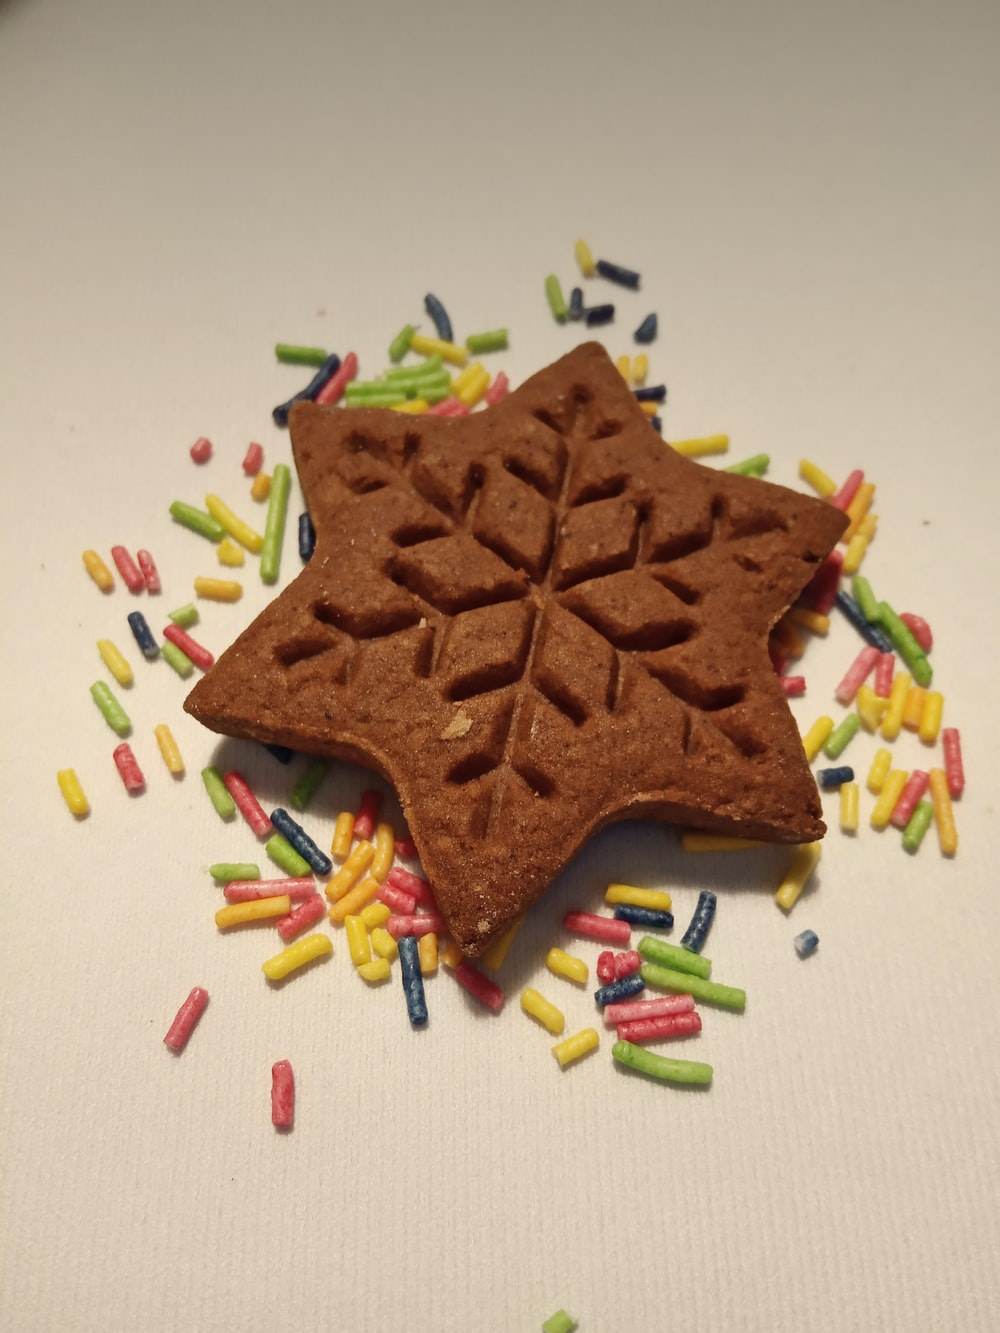 brown star shaped cookie on white surface